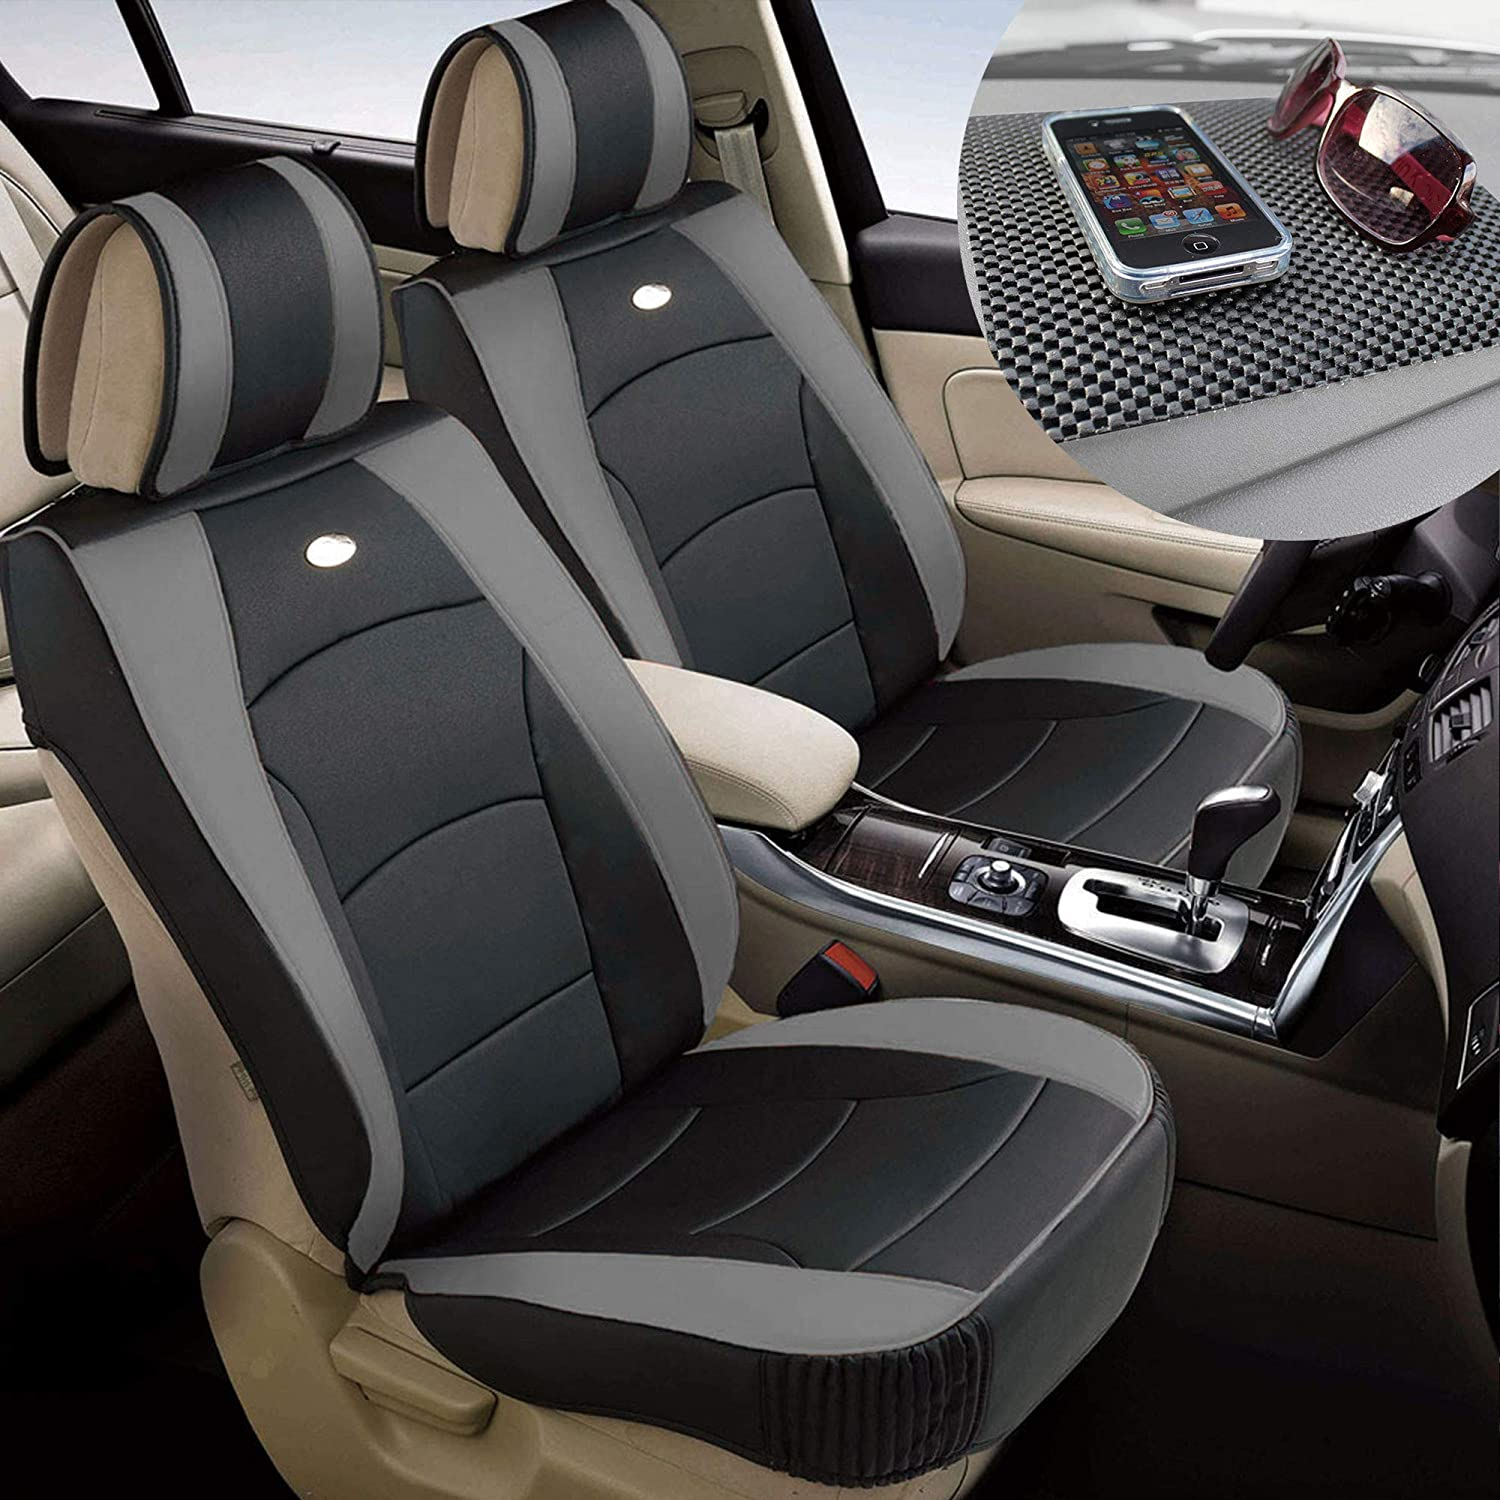 TLH Ultra Comfort Leatherette Seat Cushions Front, Gray Black Color w/Non Slip Dash Mat